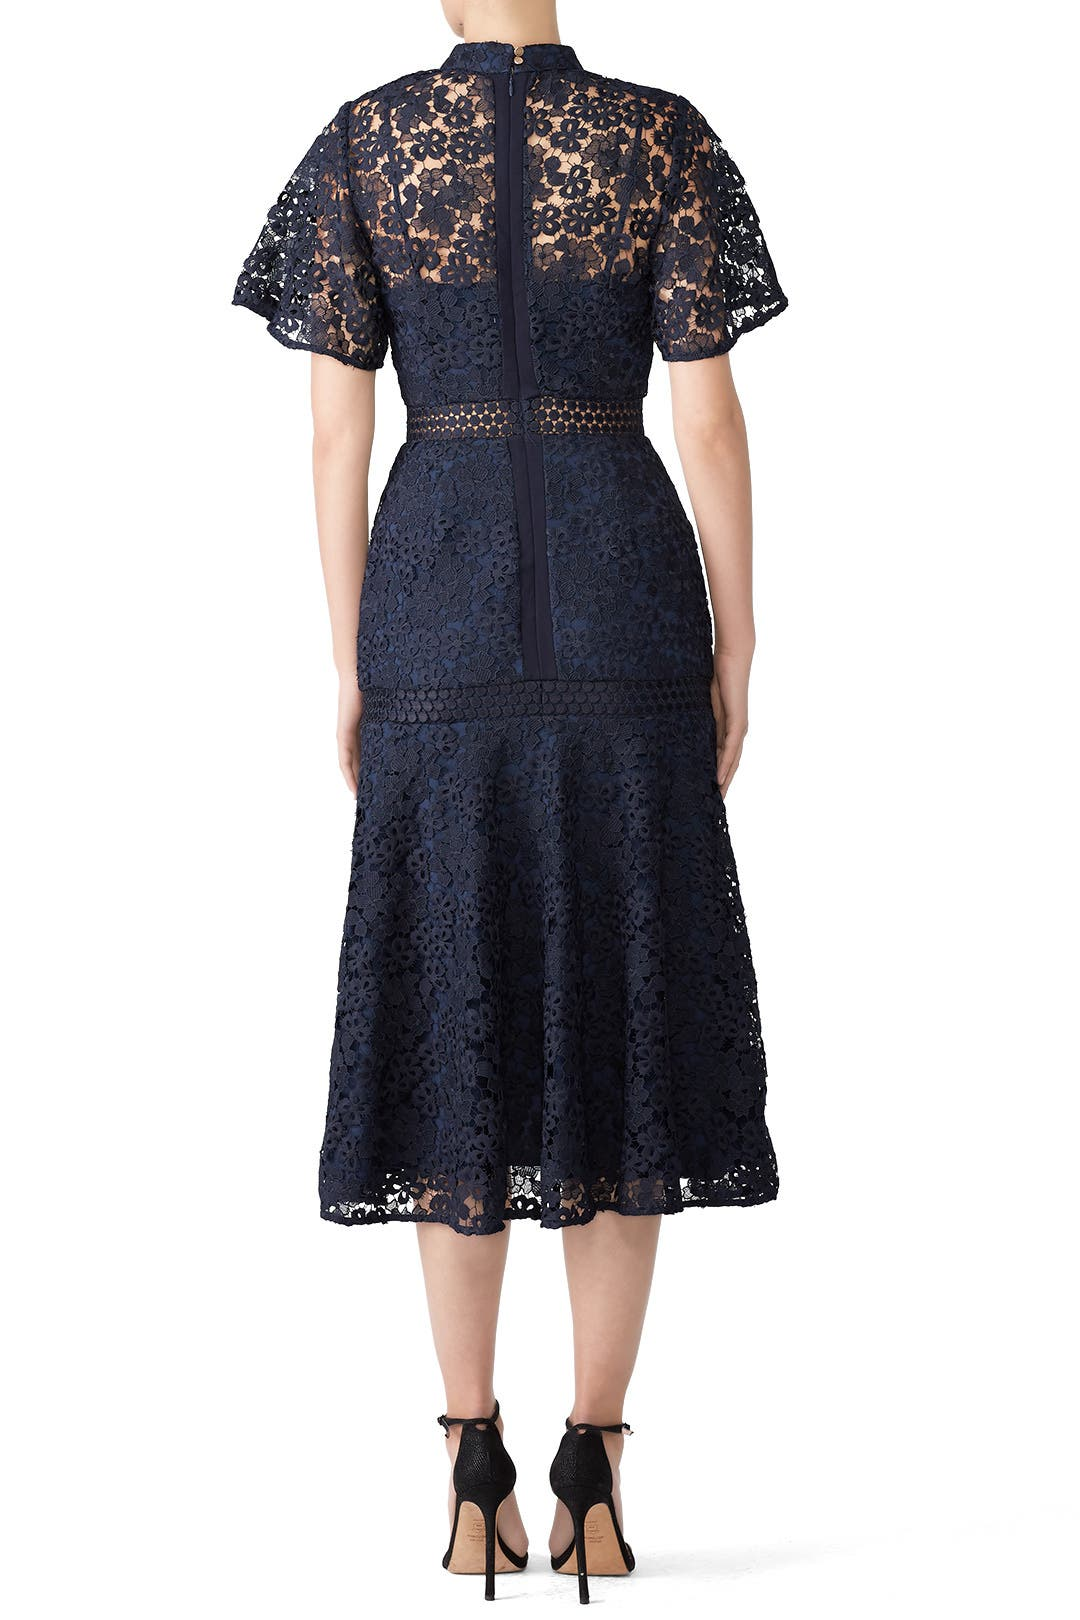 03d60839cc4d Utopia Lace Midi Dress by Keepsake for  30 -  45